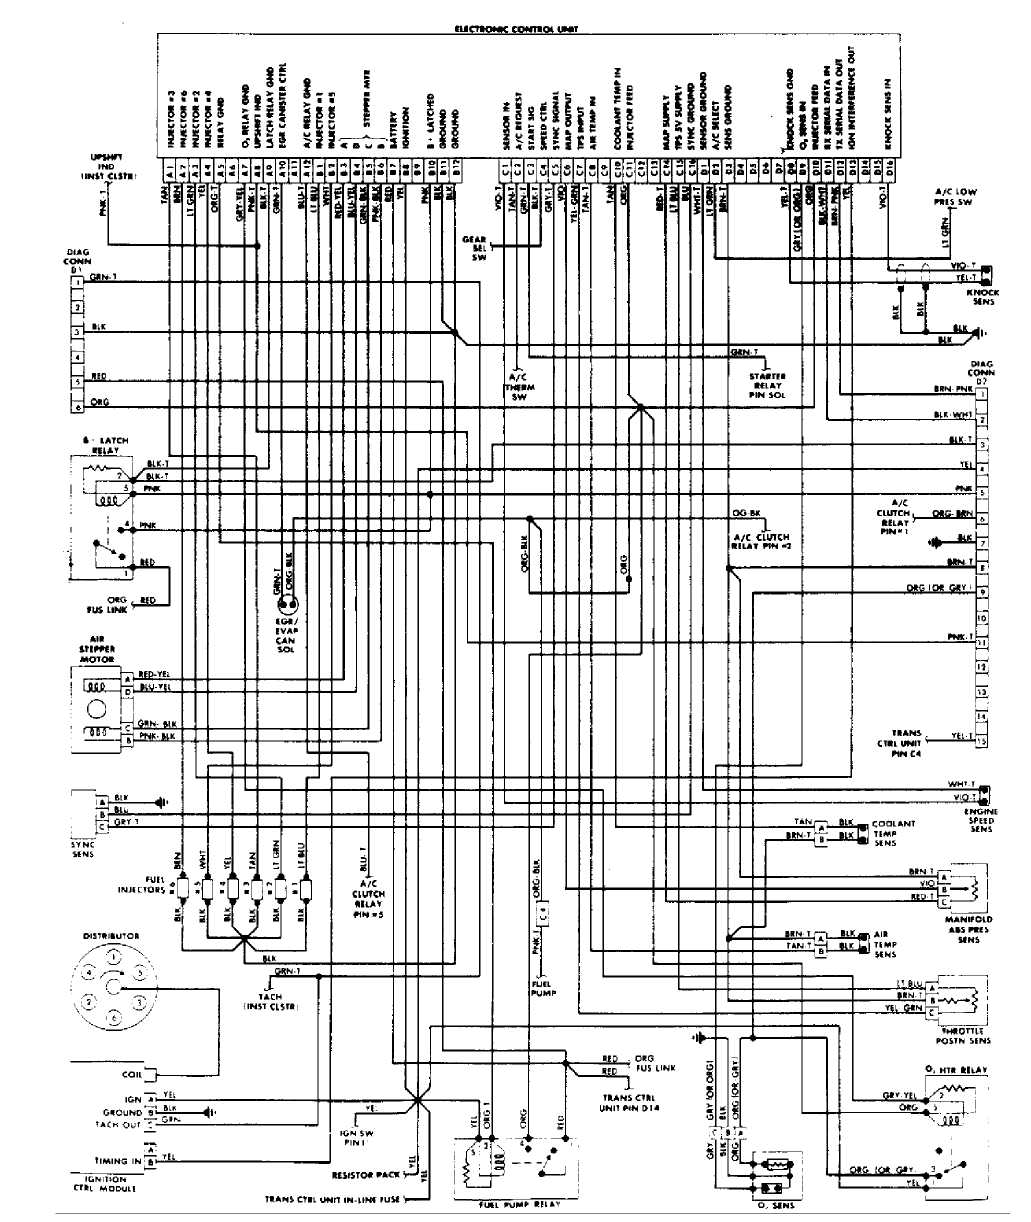 Cat 3176 Wiring Diagram - Wiring Liry Diagram A2 Wiring Diagram For Cat on cat 5 installation, cat 5 wall jack diagram, cat 6 jack wiring, speaker wire diagram, cat color by number coloring pages, cat 6 diagram, cat 5 pin configuration, cat 5 distributor, cat 5 generator, cat 5 connectors diagram, ceiling fan installation diagram, cat 5 splitter, cat 5 vs cat 6, cat 5e vs cat 5, cat 5 specifications, cat 5 cable diagram, cat 5 a vs b, cat 5 troubleshooting, cat 5 wall plate, cat wiring standards,